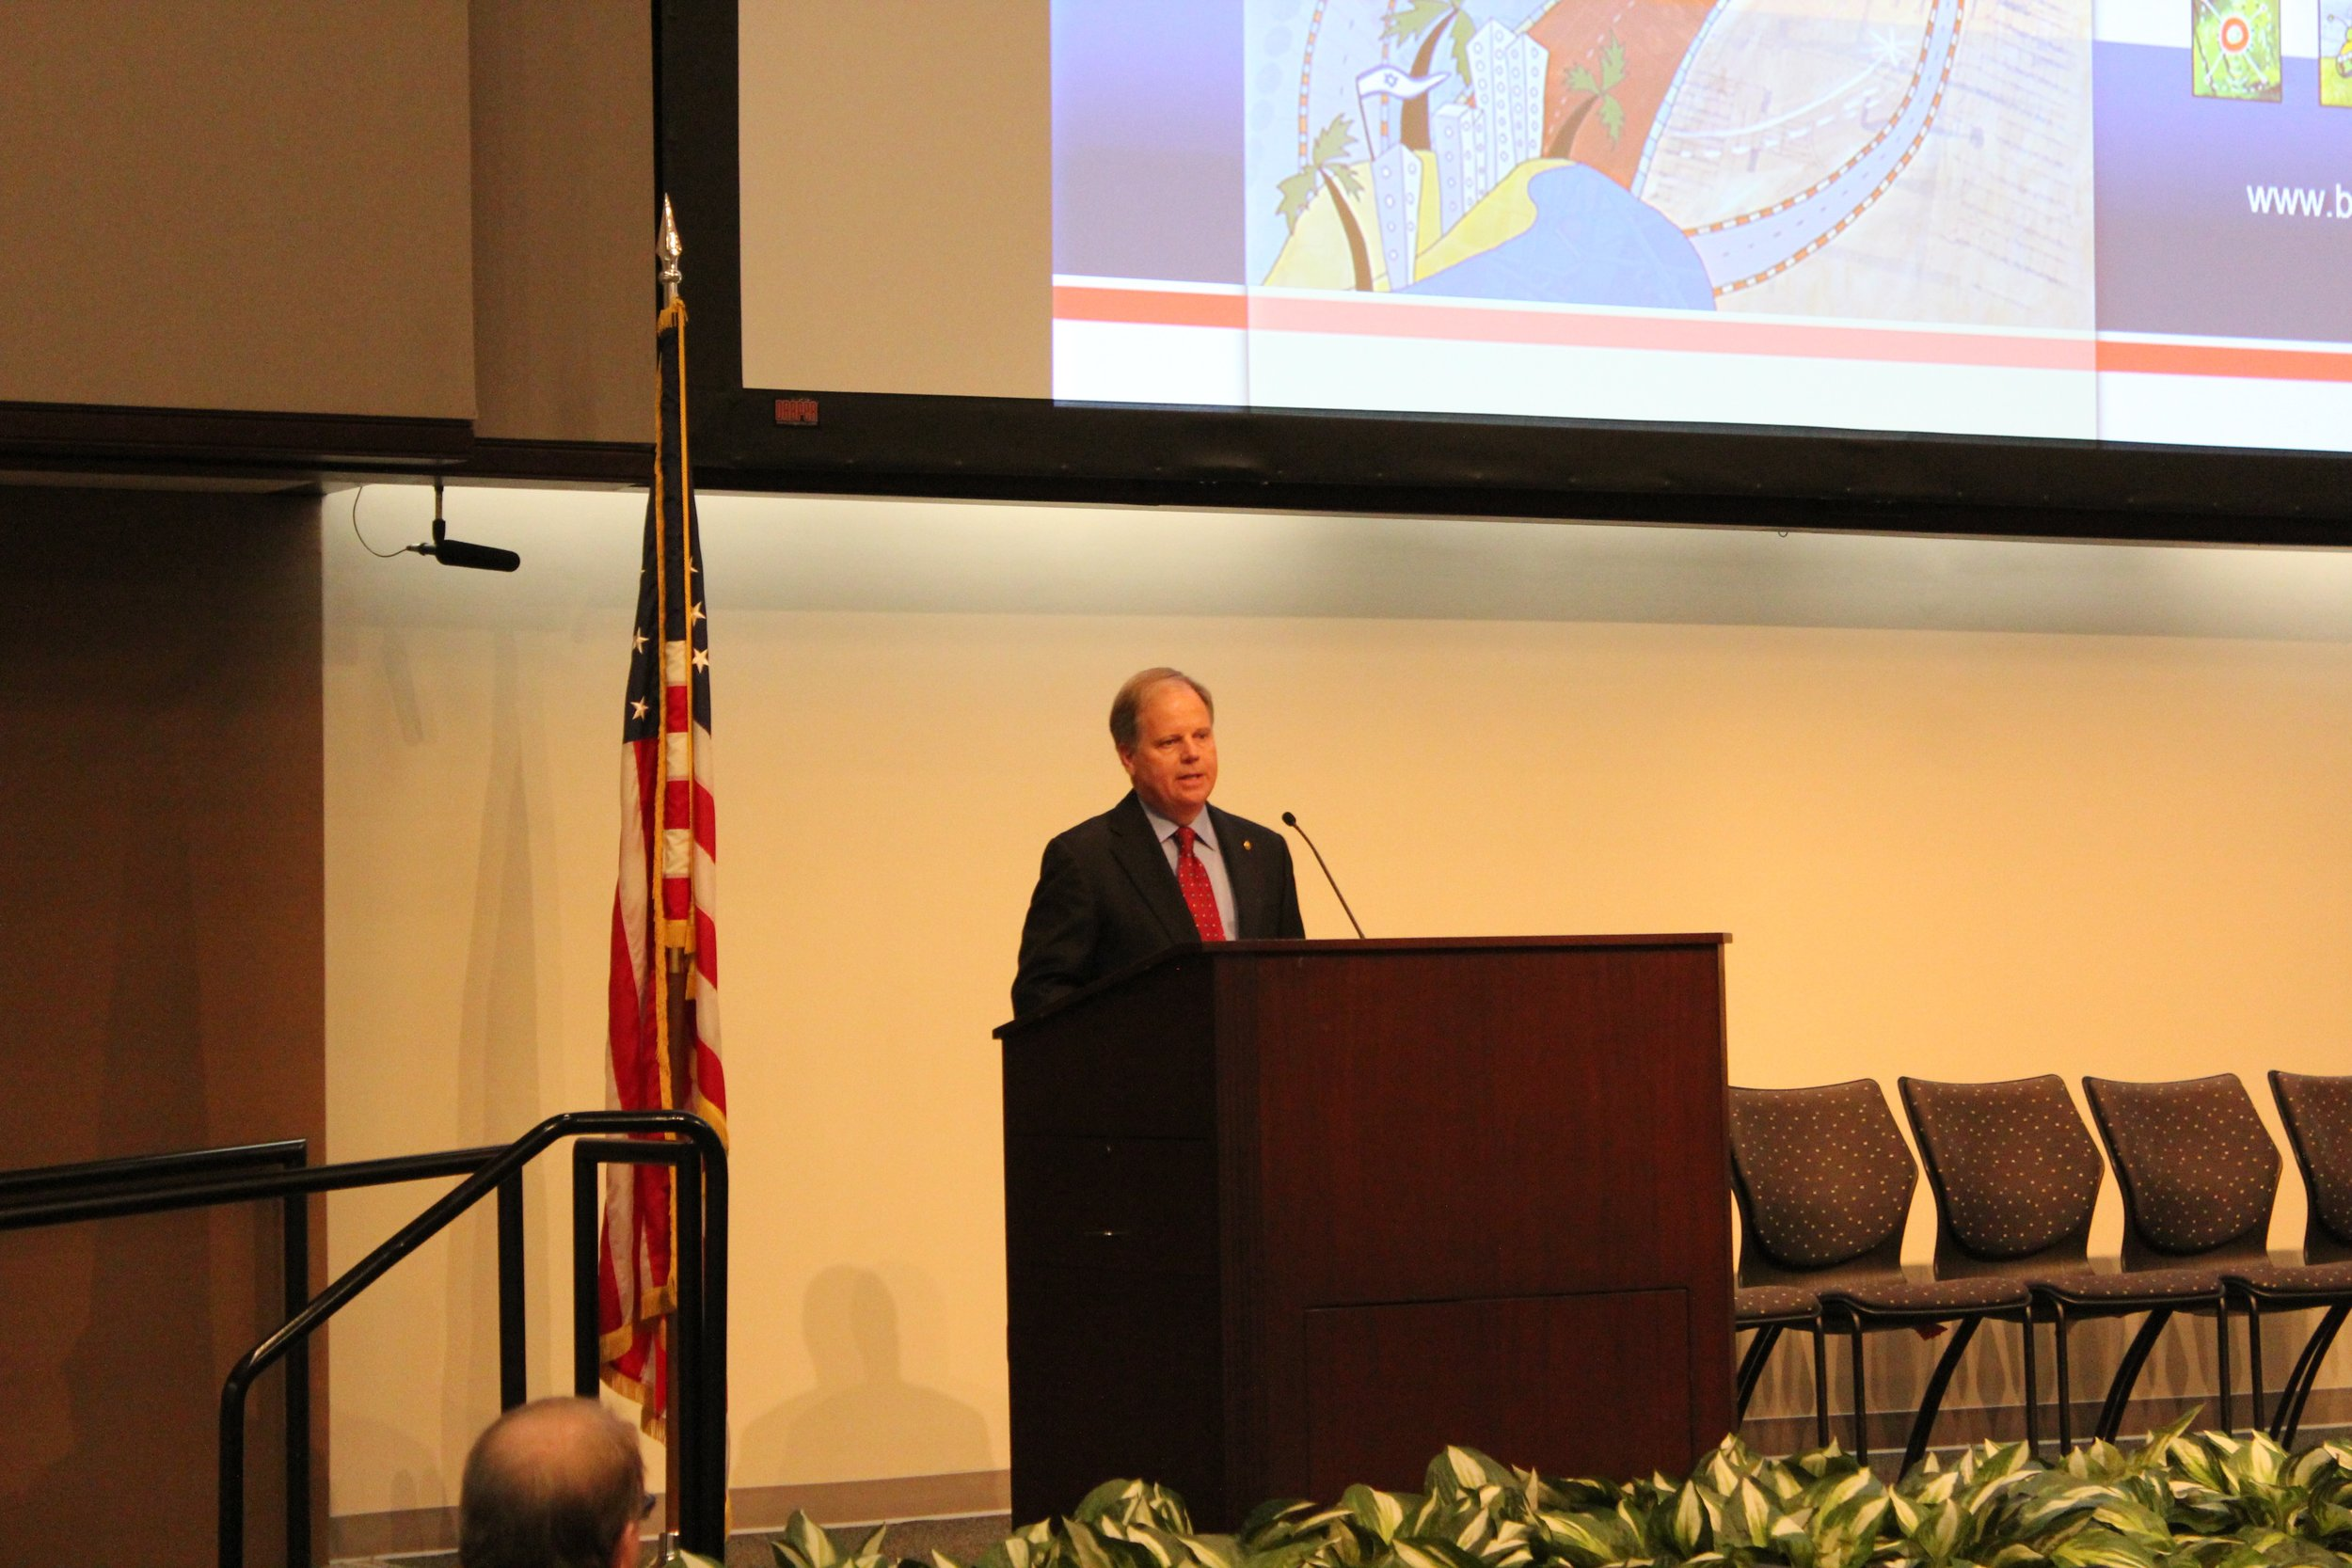 """U.S. Senator Doug Jones was the keynote speaker during """"Doing Business with Israel: Opportunities for Alabama-Israel Technology Partnerships,"""" hosted by the Birmingham Business Alliance this week."""